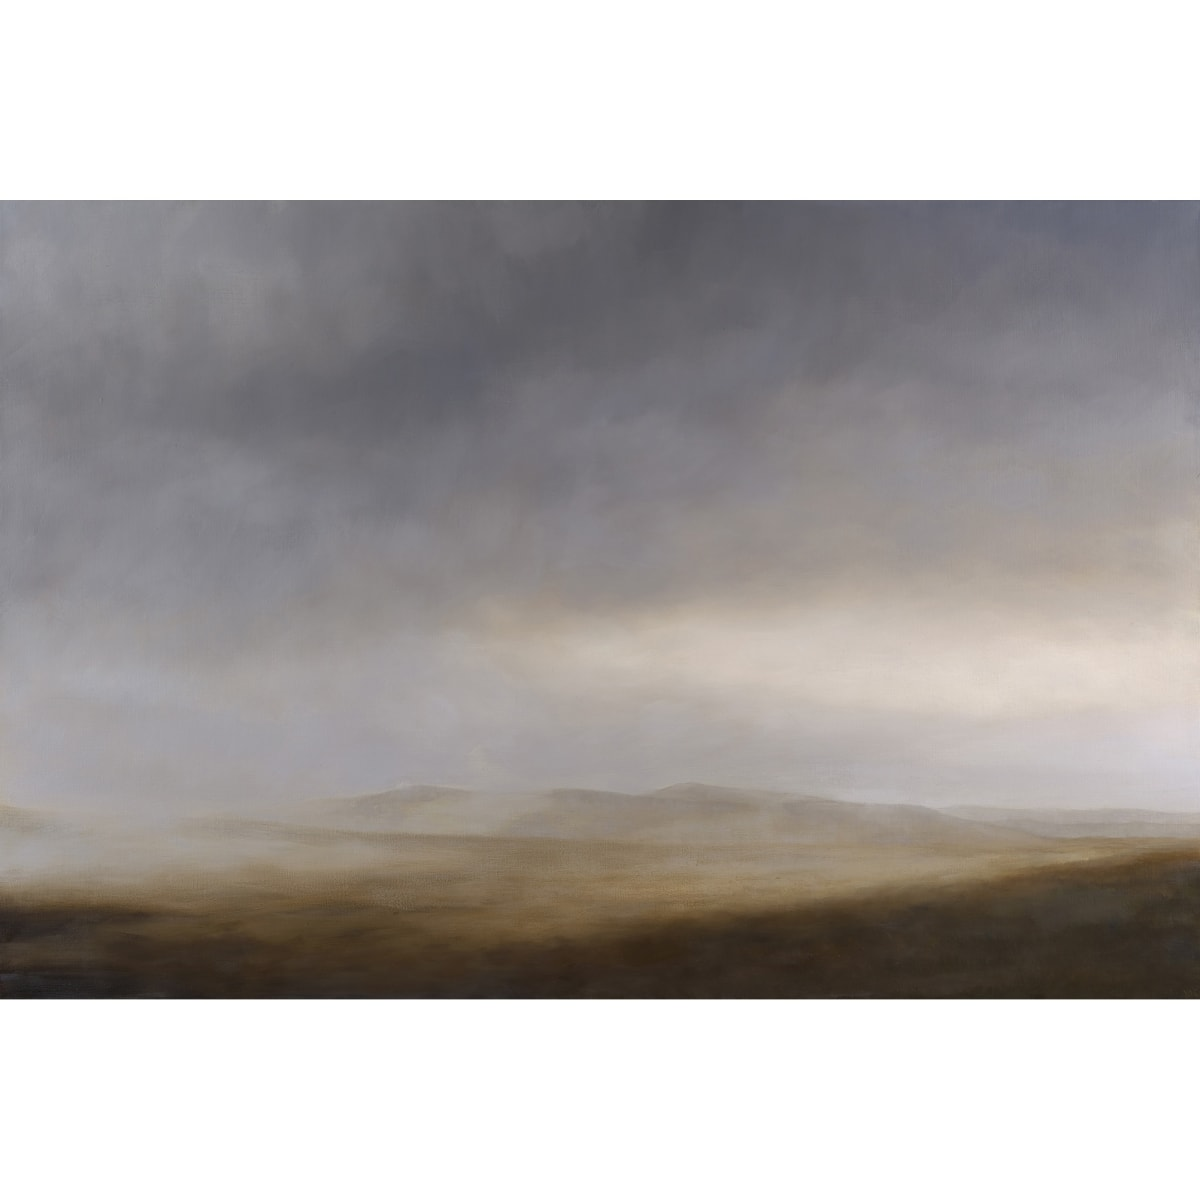 Victoria Orr Ewing Rannoch Moor, 2019 initialled and dated '19; titled, initialled and dated verso oil on canvas 146 x 97 cm